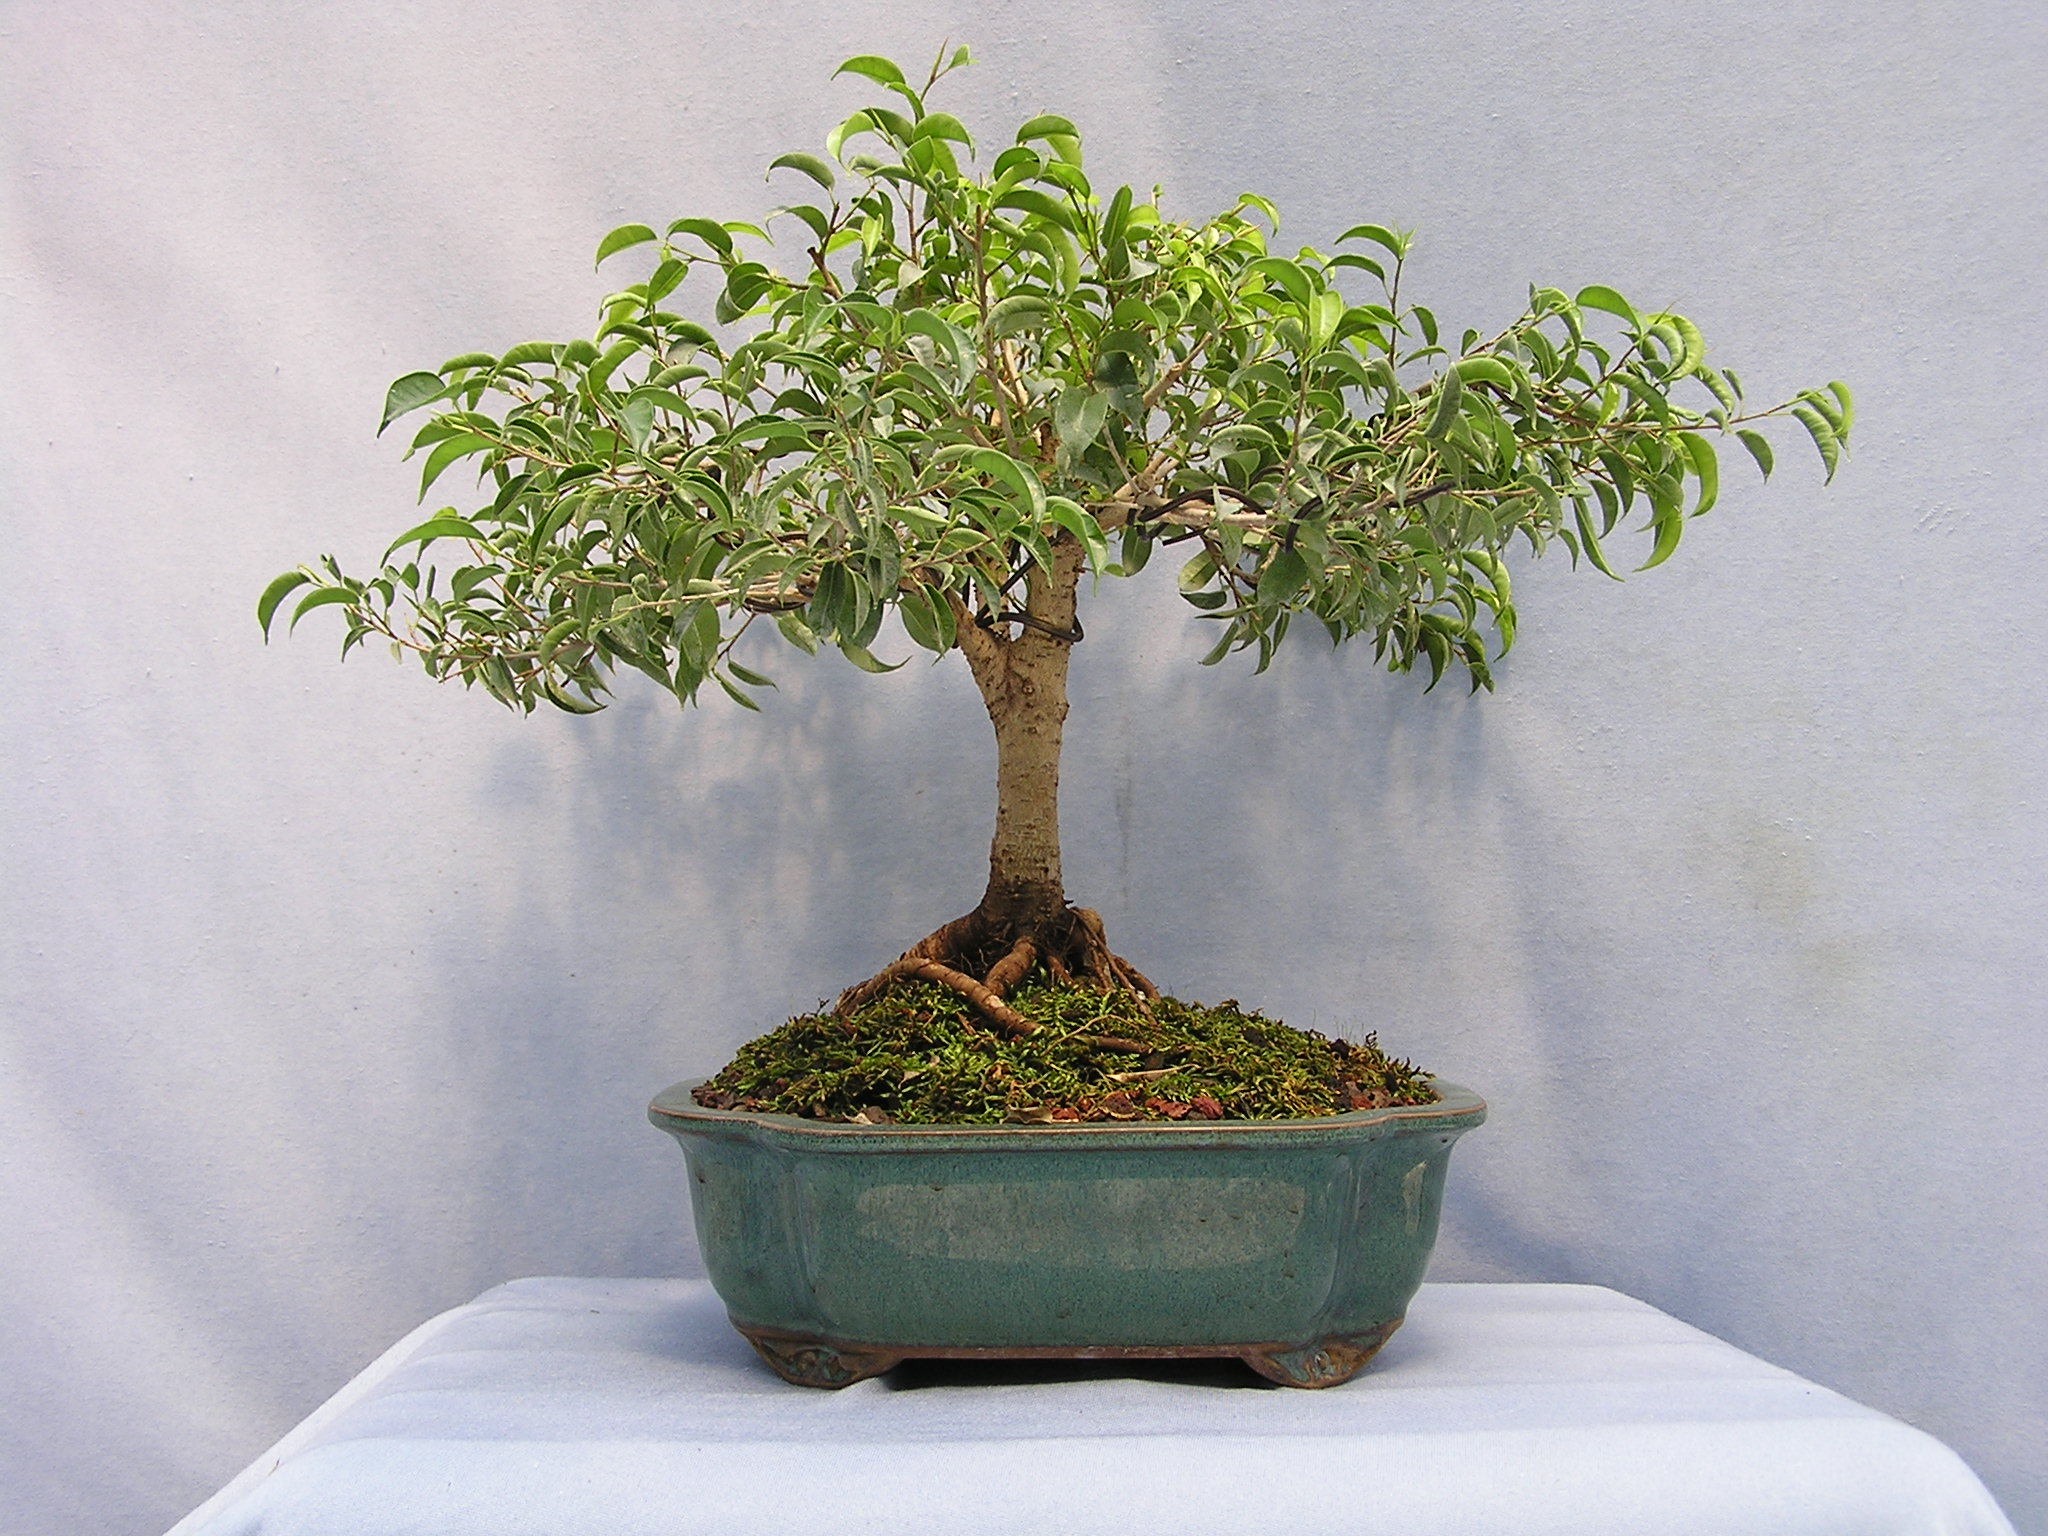 Dasu bonsai studios ficus benjamina toolittle over a rock for 1800 flowers bonsai